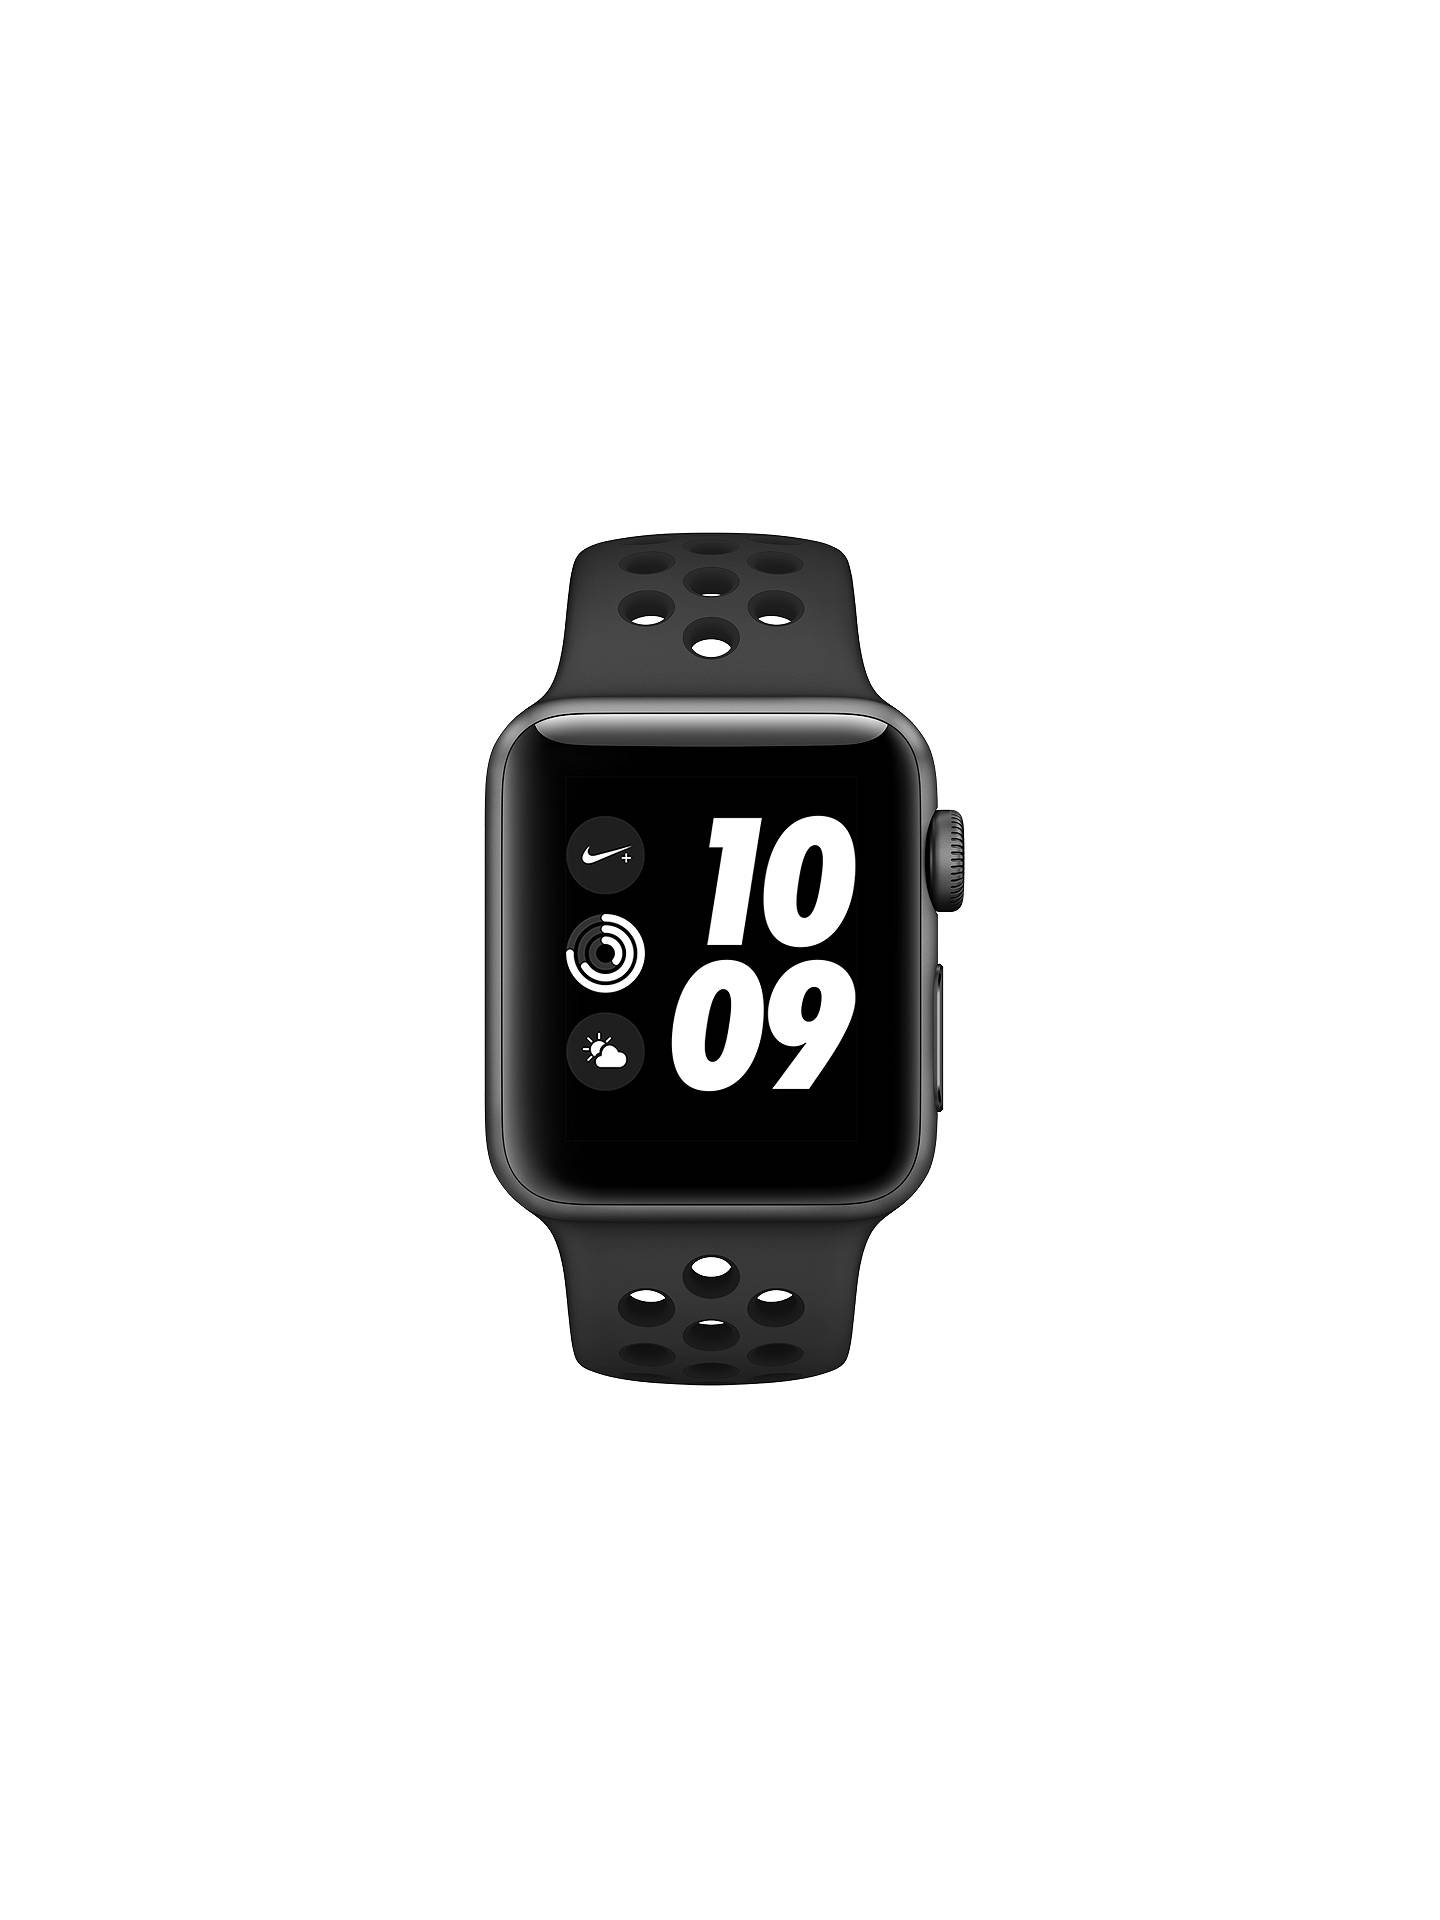 Buy Apple Watch Nike+ Series 3, GPS, 38mm Space Grey Aluminium Case with Nike Sport Band, Anthracite / Black Online at johnlewis.com